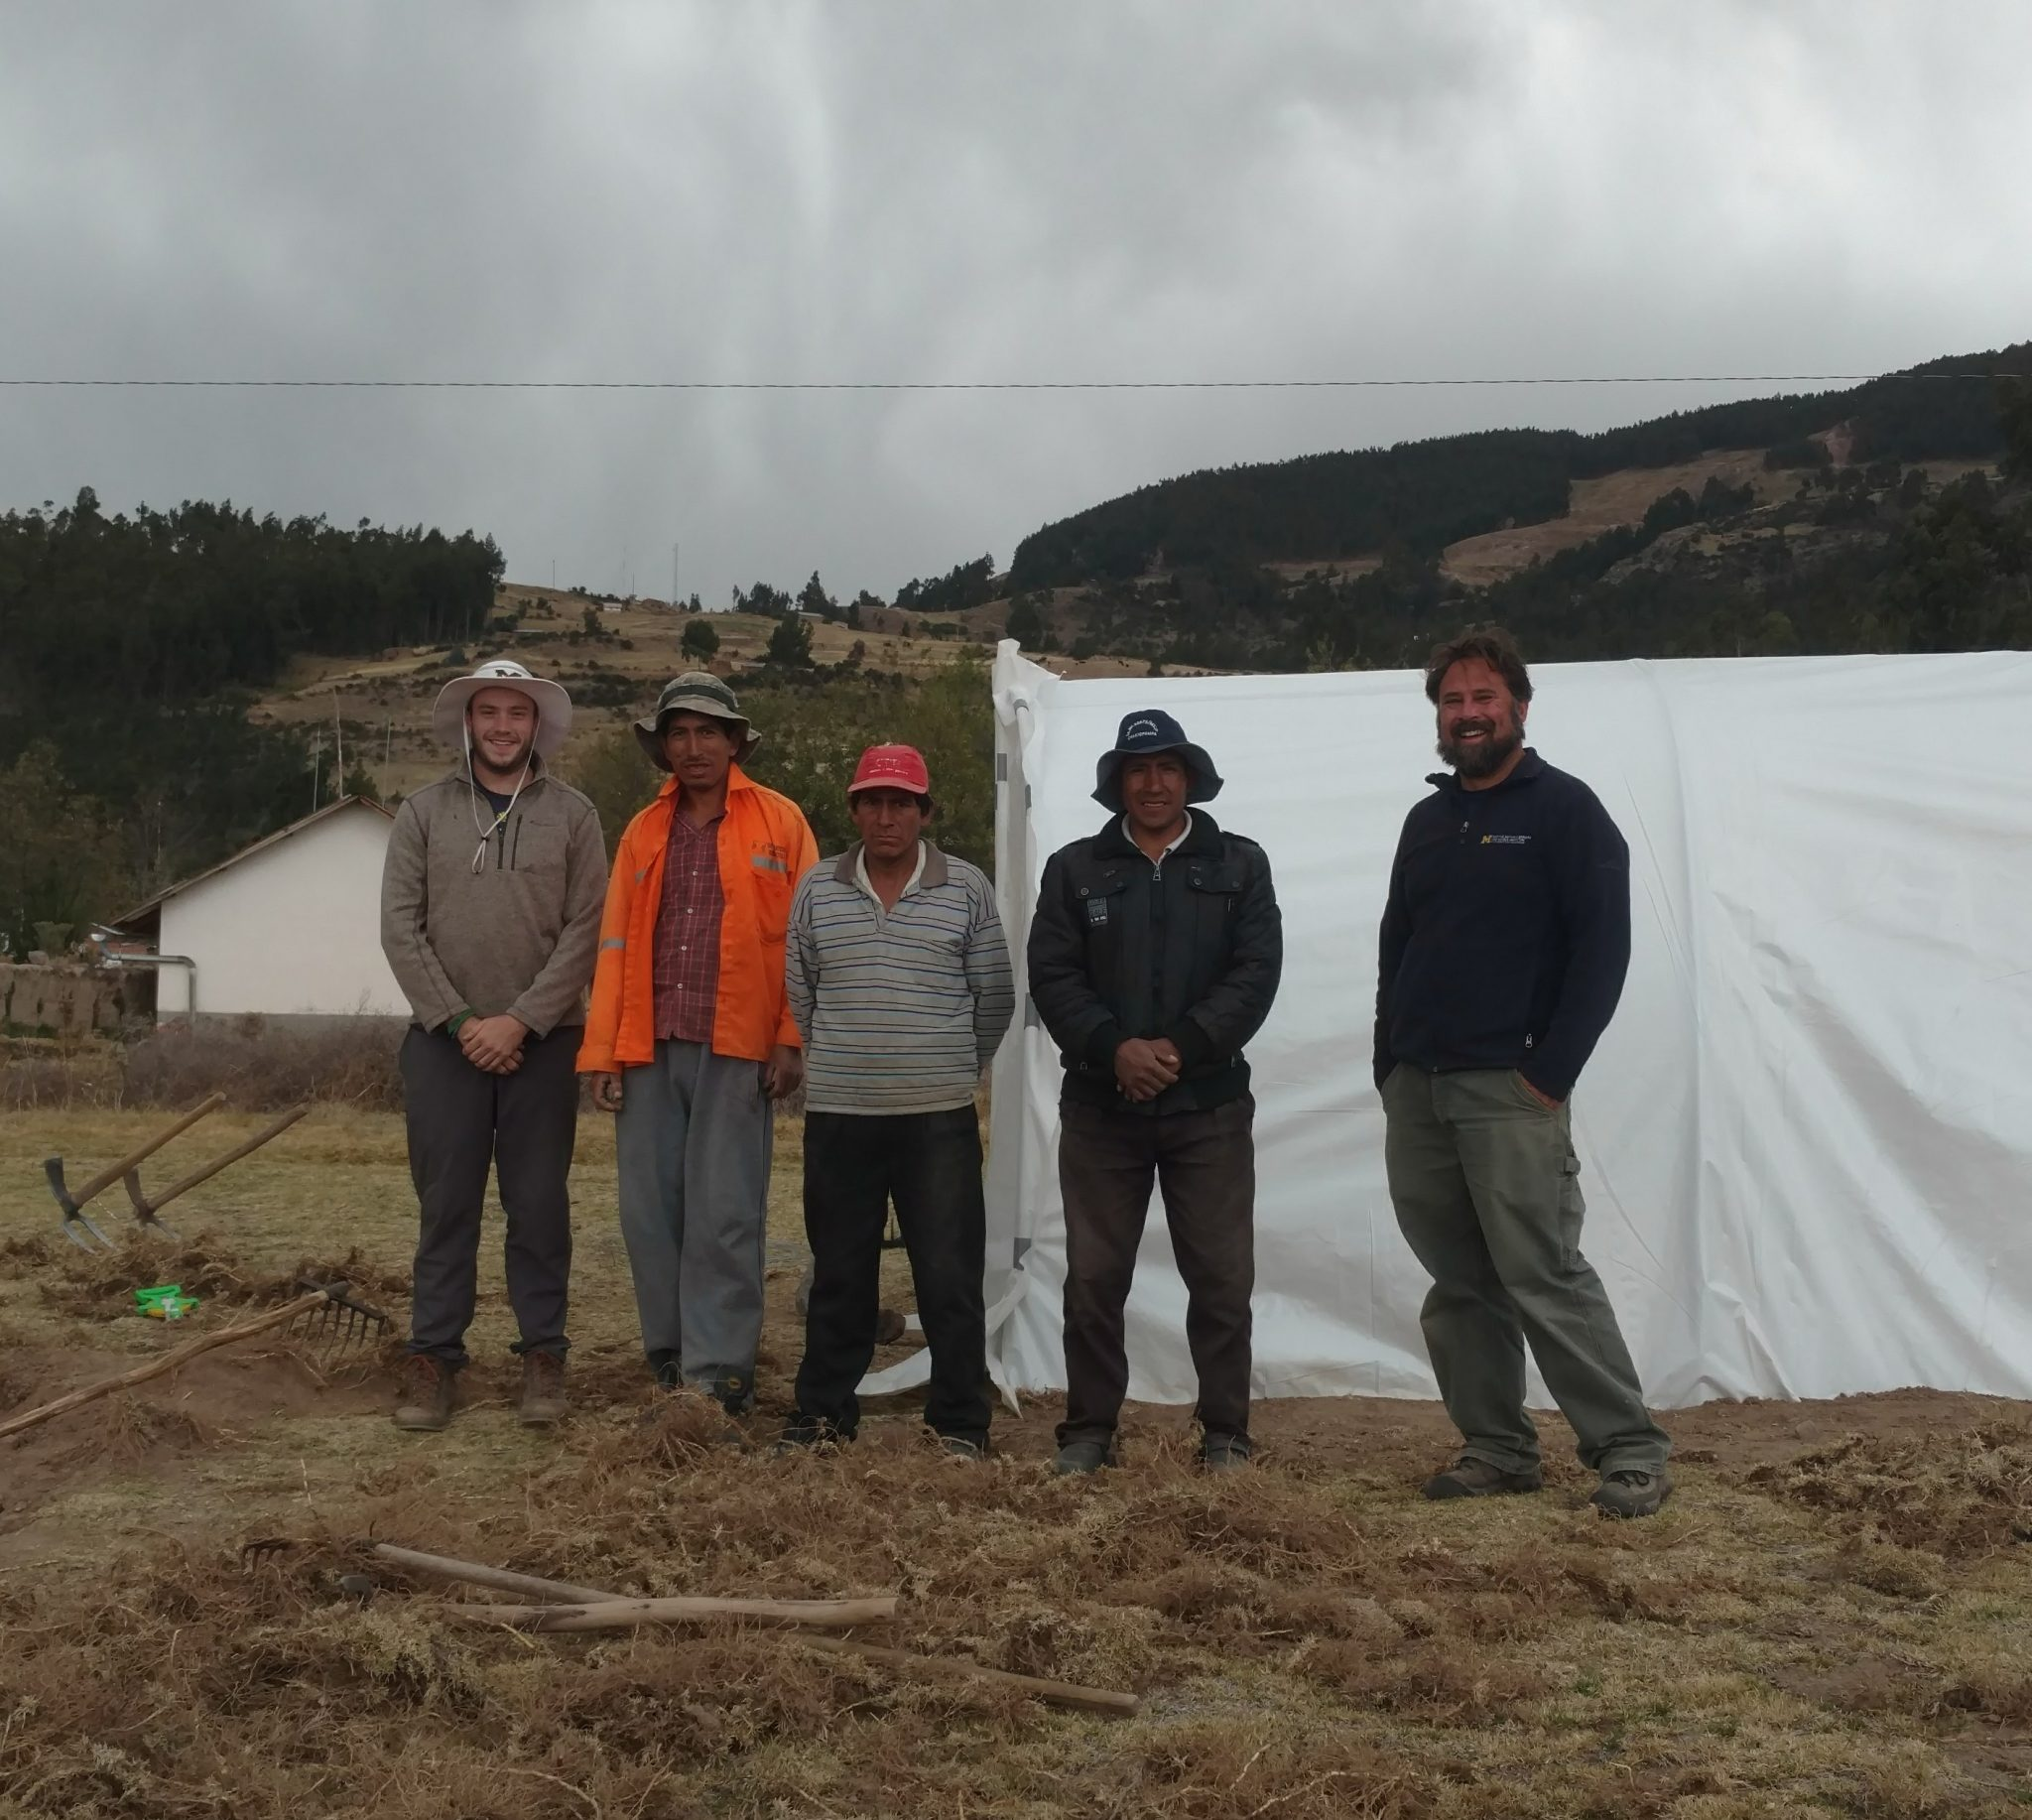 ustainability without Borders in Peru